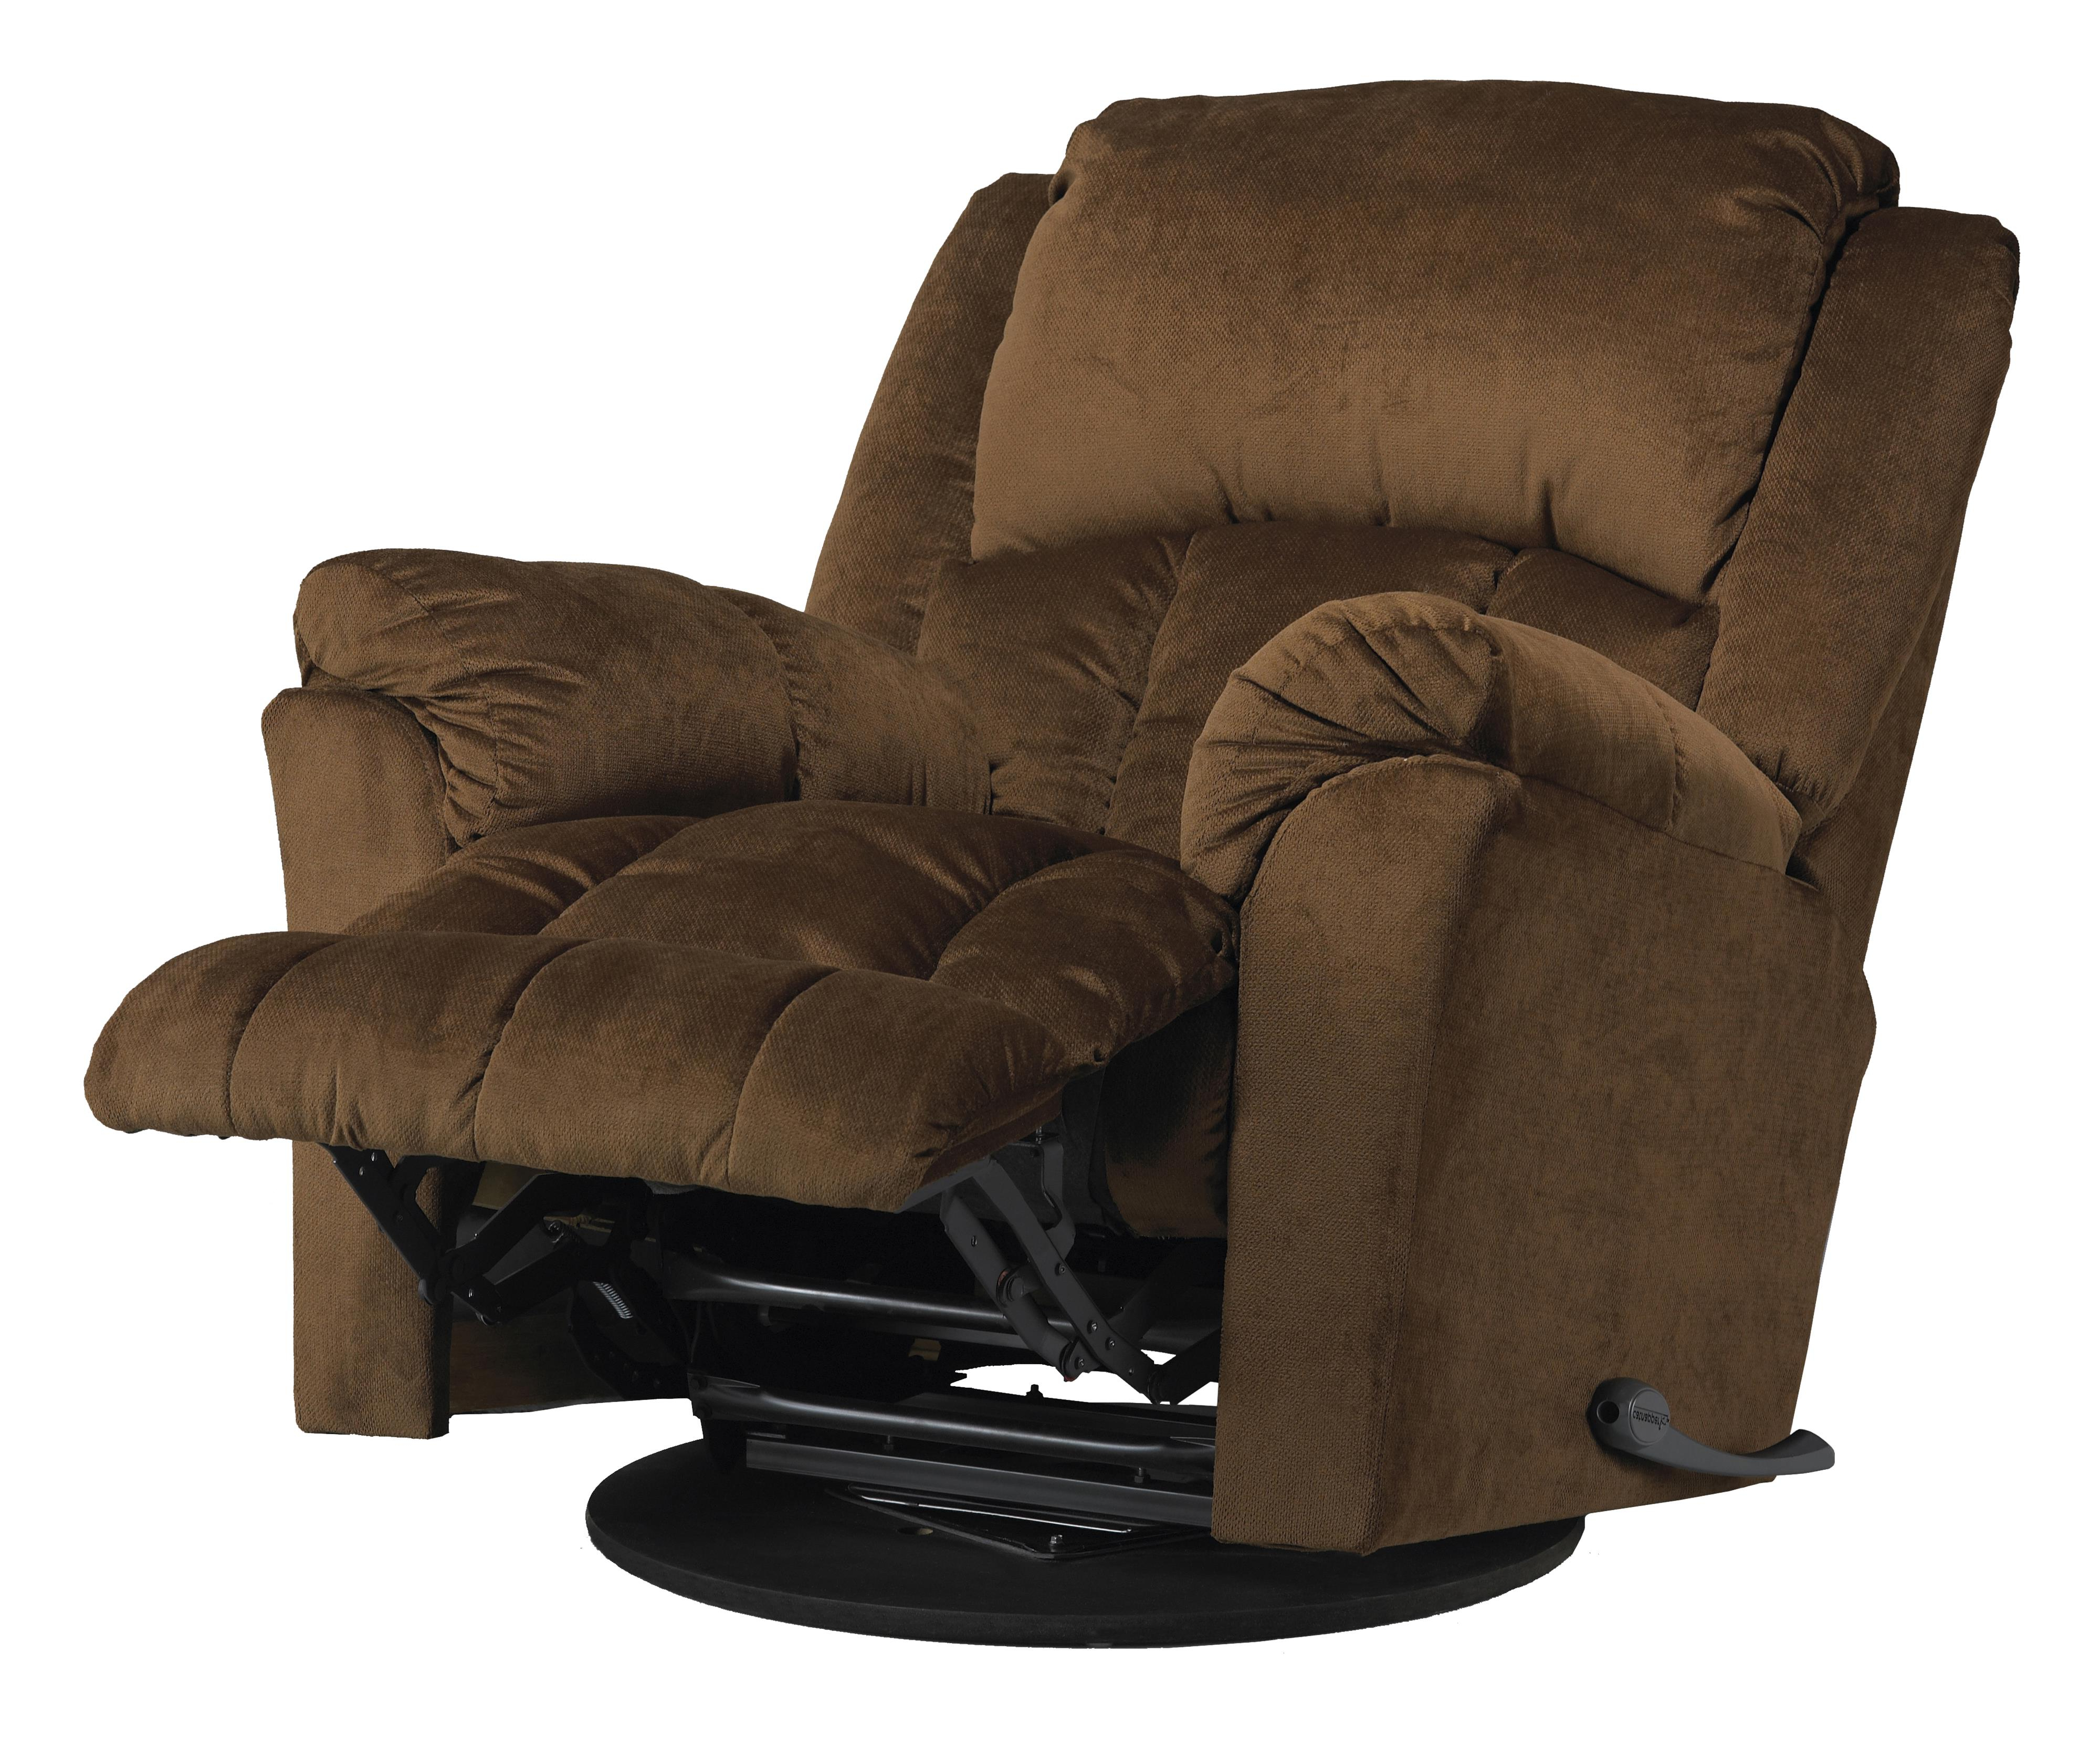 Gibson Swivel Cuddler Chairs Pertaining To Recent Motion Chairs And Recliners Gibson Lay Flat Reclinercatnapper At  Furniture Fair – North Carolina (Gallery 3 of 20)